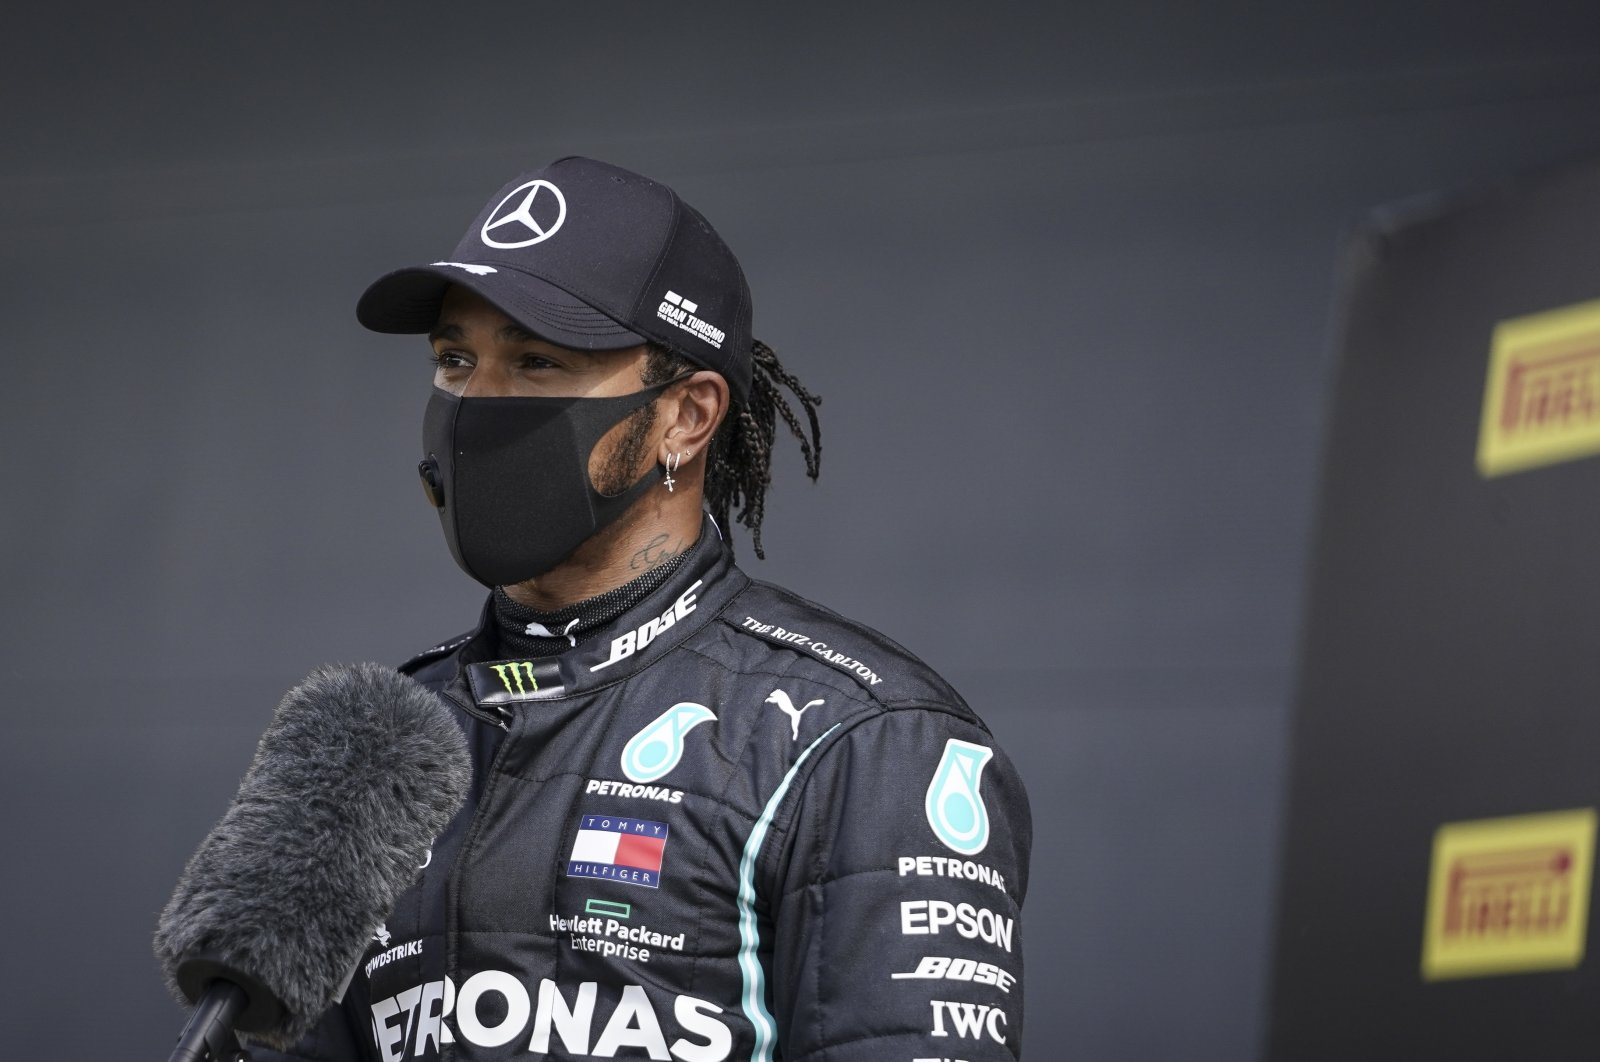 British Formula One driver Lewis Hamilton of Mercedes-AMG Petronas talks to media after he took pole position during the qualifying session of the British Formula One Grand Prix in Silverstone, Britain, 01 August 2020. (EPA Photo)